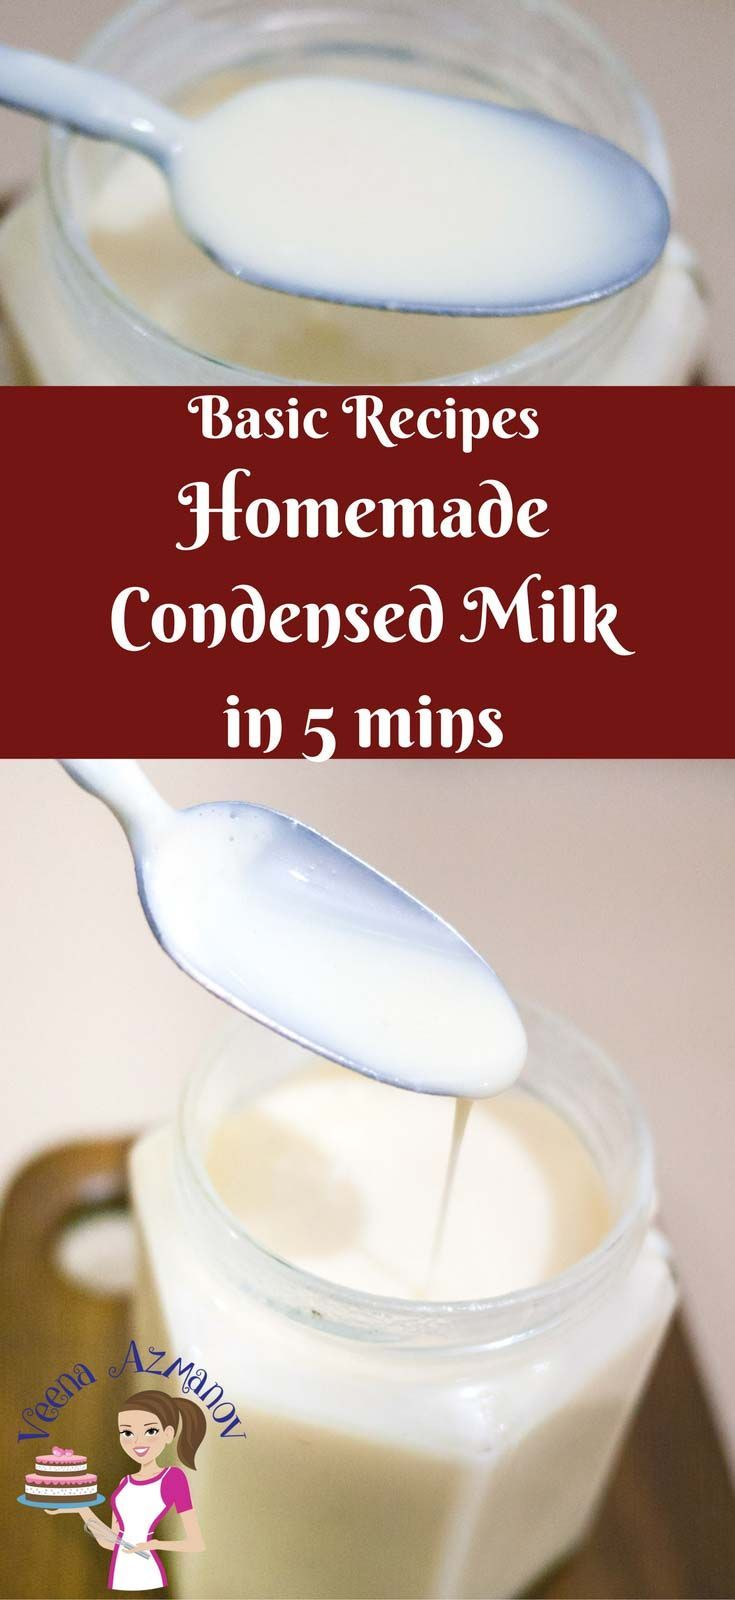 Homemade Condensed Milk In 5 Minutes How To Make Condensed Milk At Home Traditional Condensed Mi With Images Homemade Condensed Milk Condensed Milk Condensed Milk Recipes